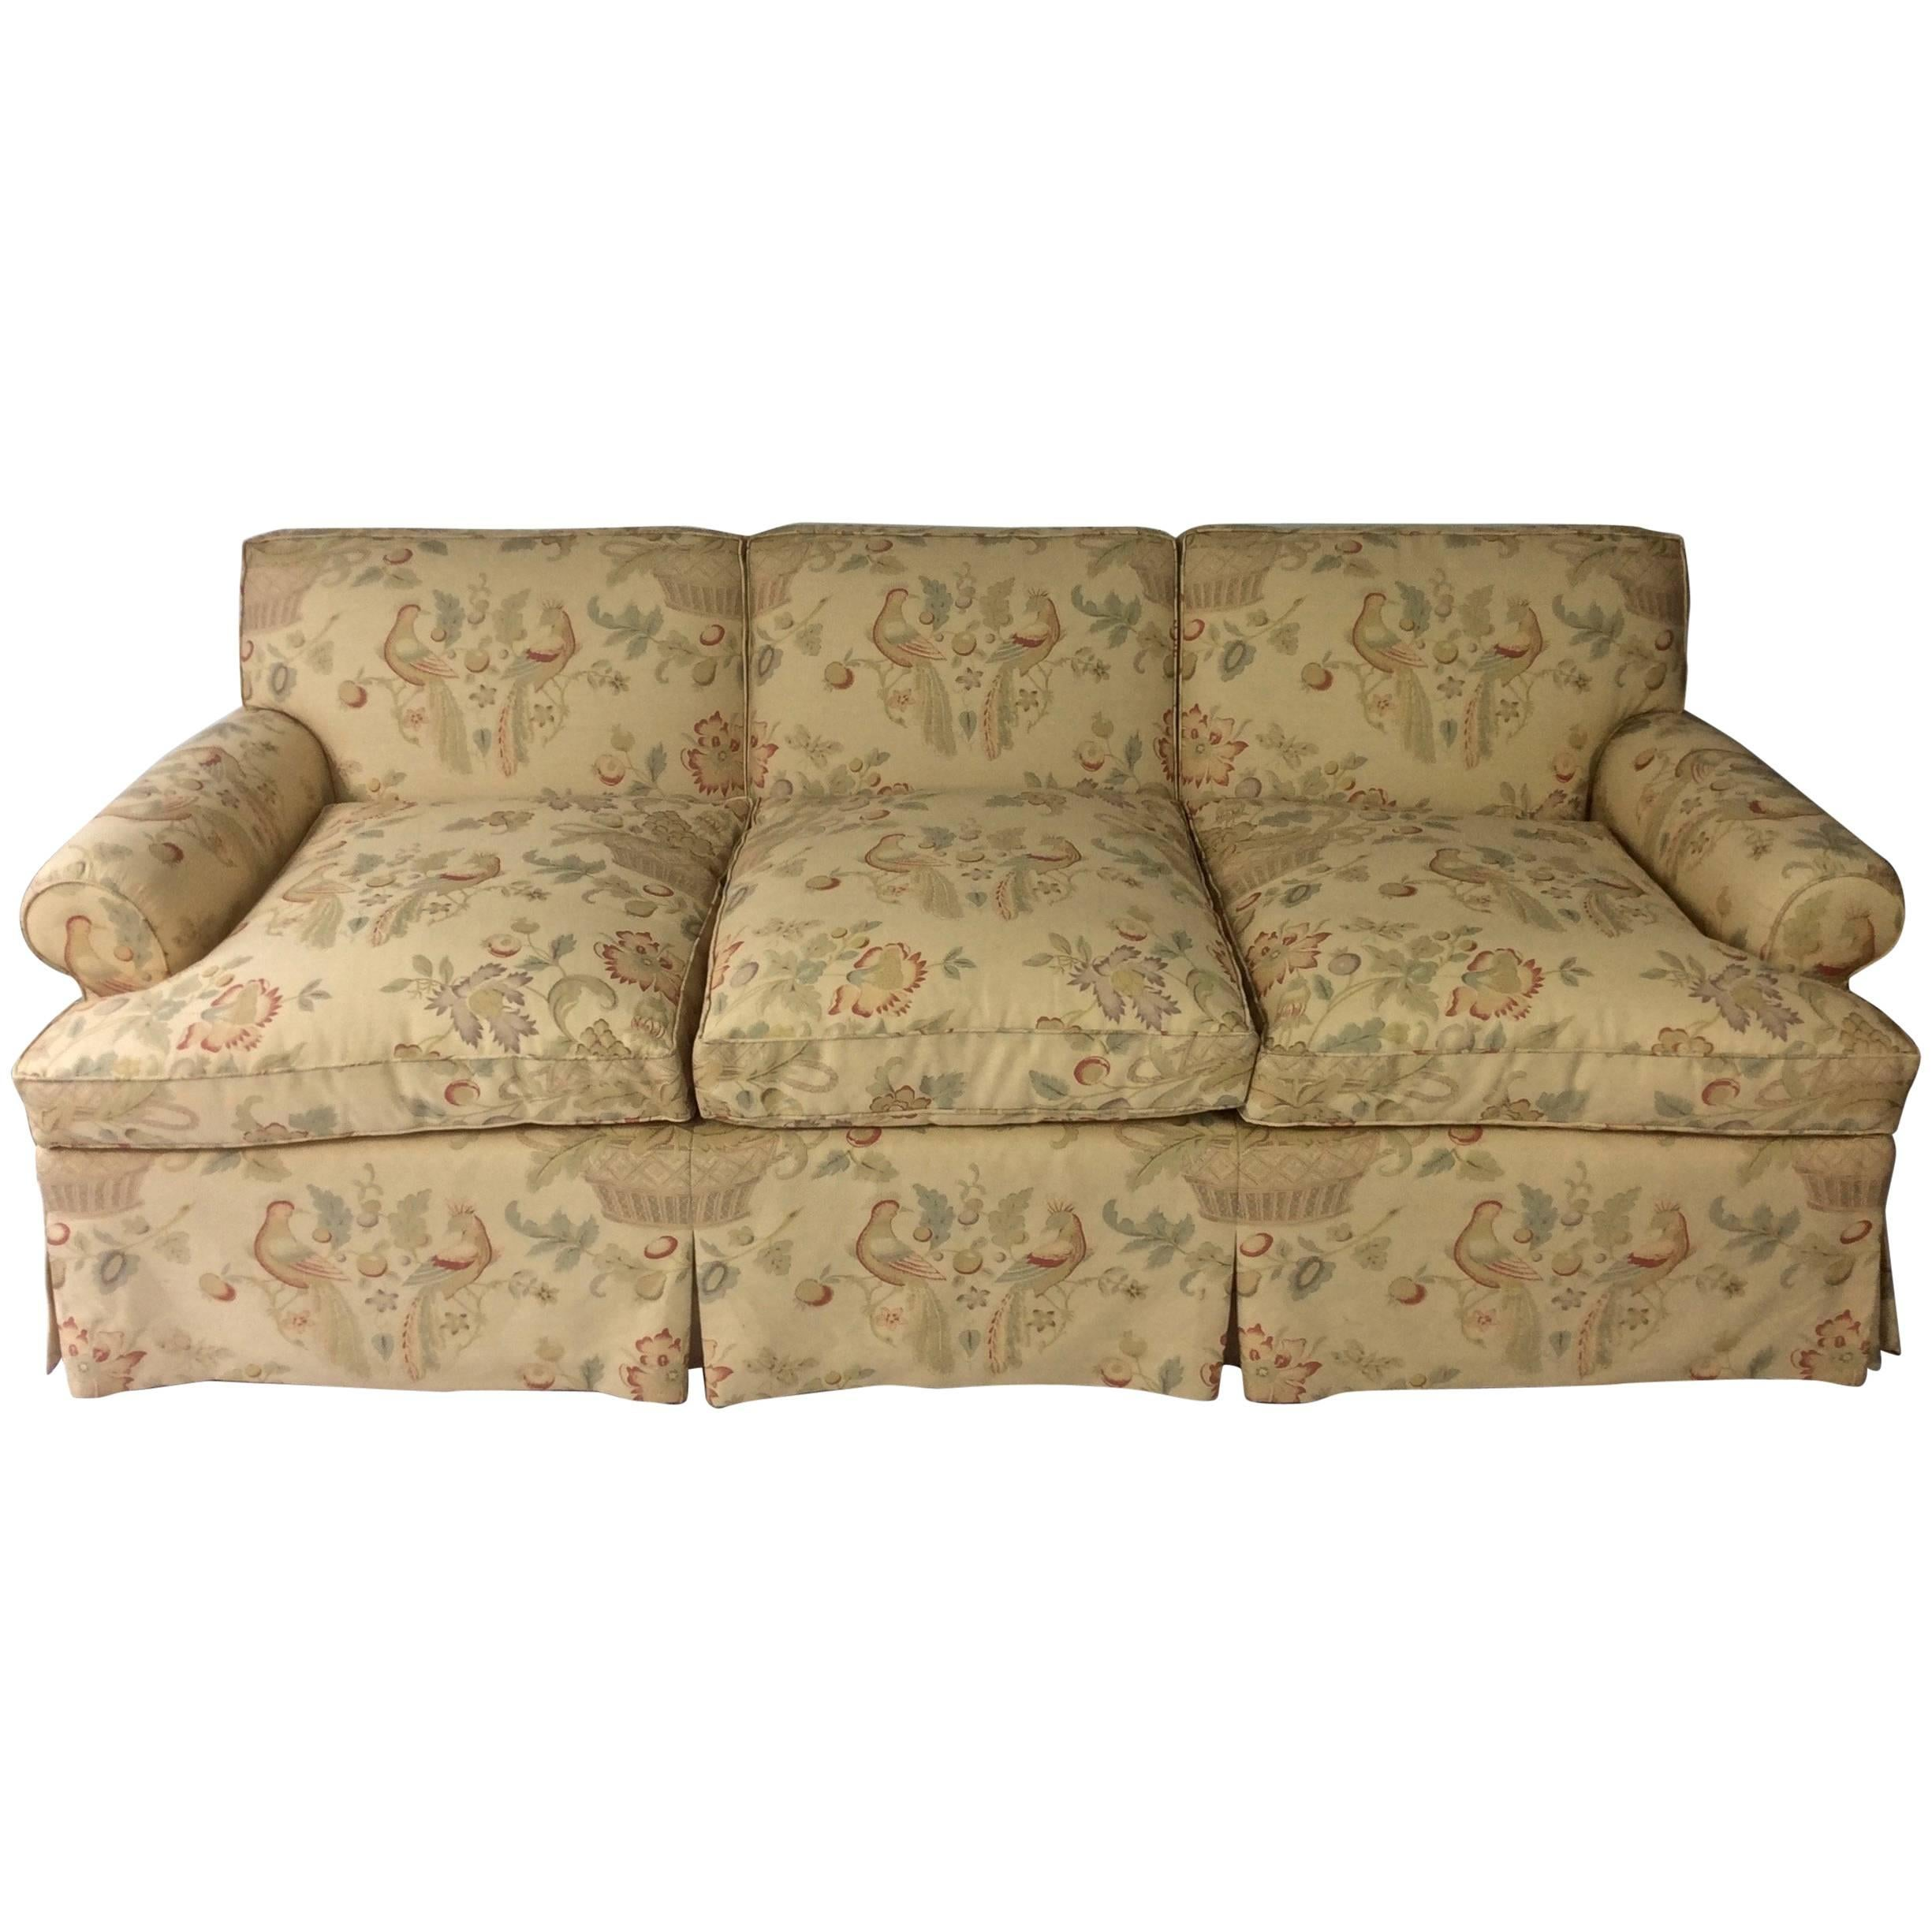 english style sofa custom upholstered in bennison hand blocked rh 1stdibs com Cottage Style Sofas english country style sofas